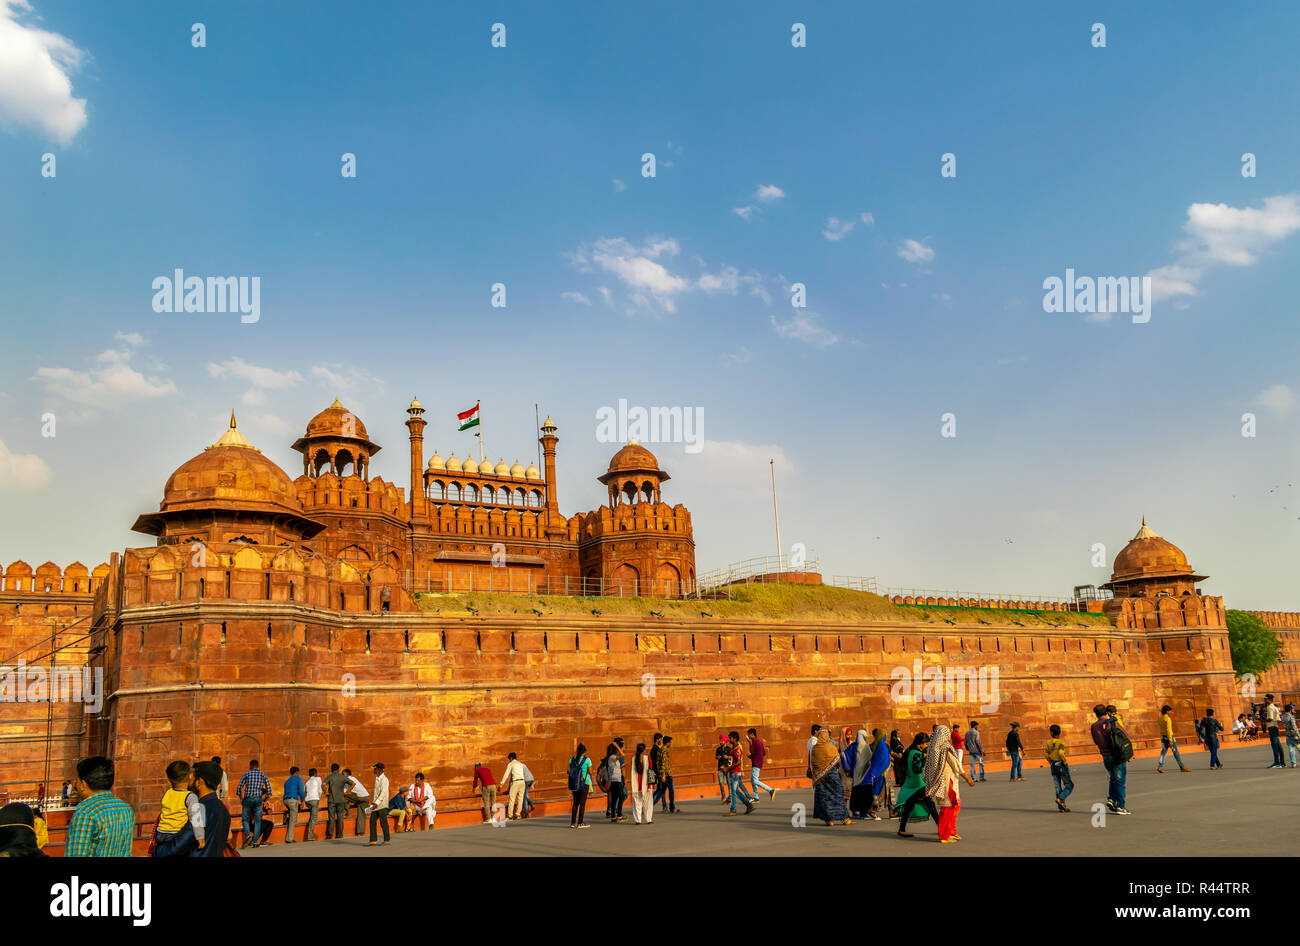 Red Fort with the Indian flag - a front view - Stock Image